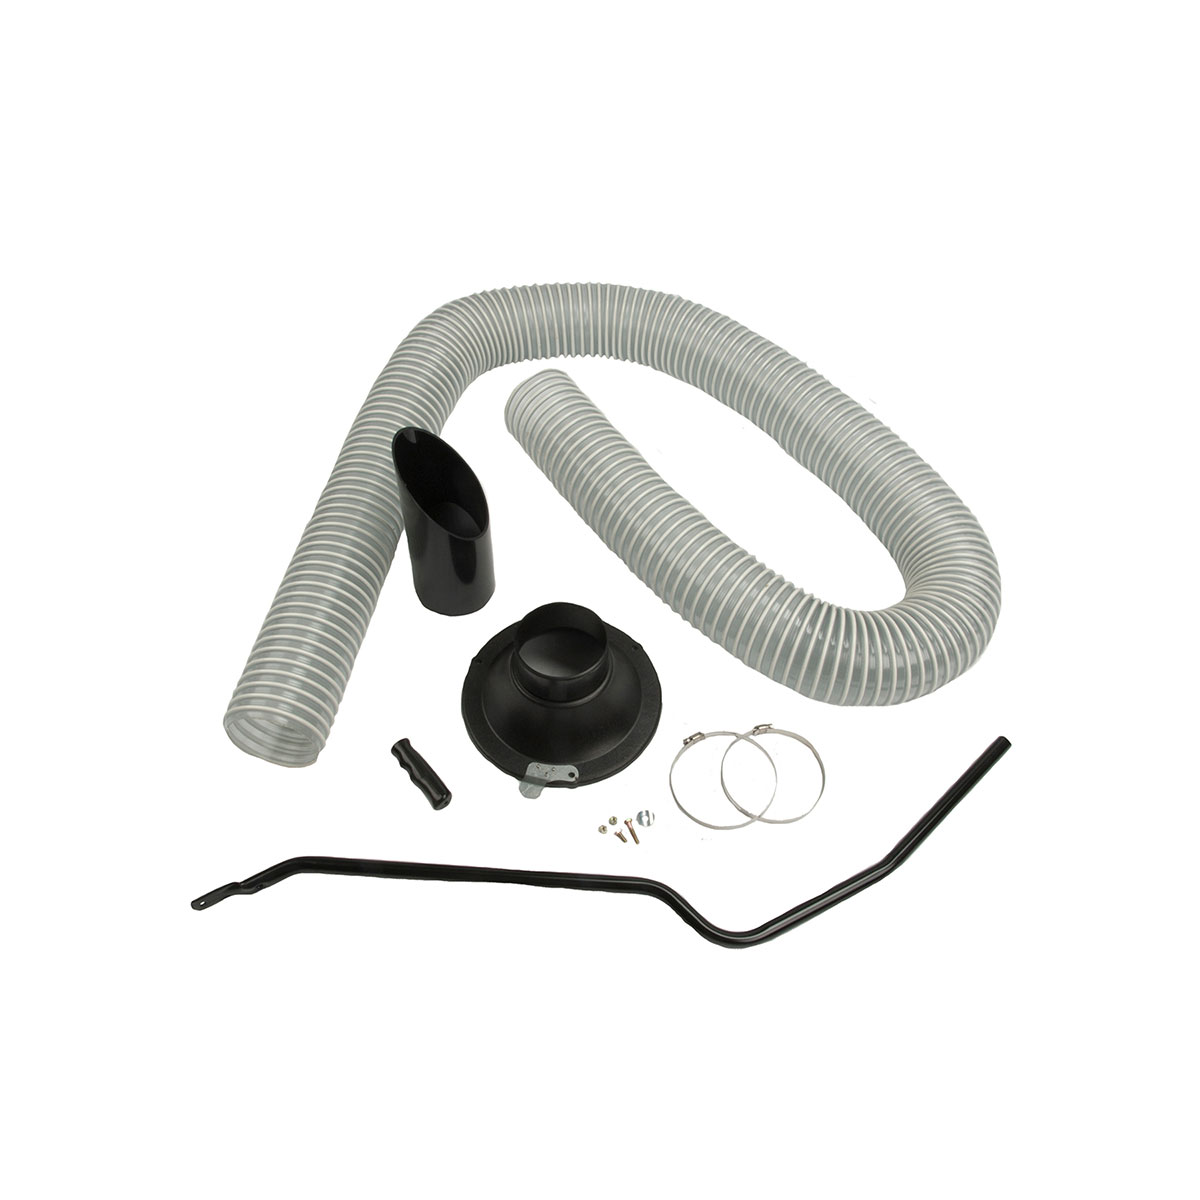 Chipper/Shredder Vacuum Hose Kit OEM-290-005